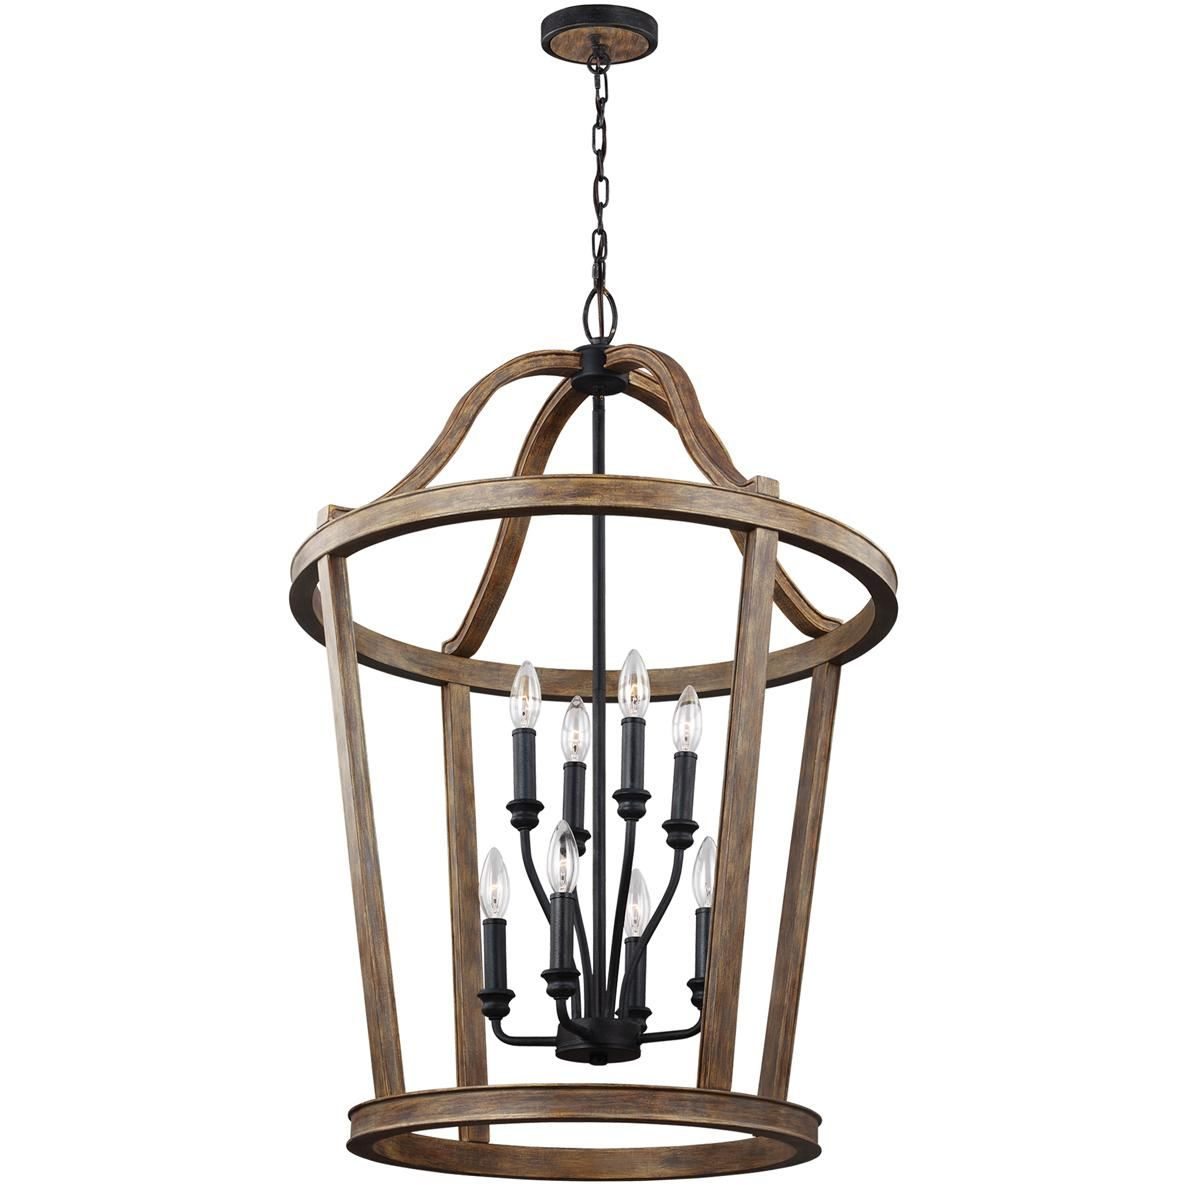 for large kitchen chandelier lowes lighting bathroom mini rustic chandeliers cheap surprising country farmhouse modern